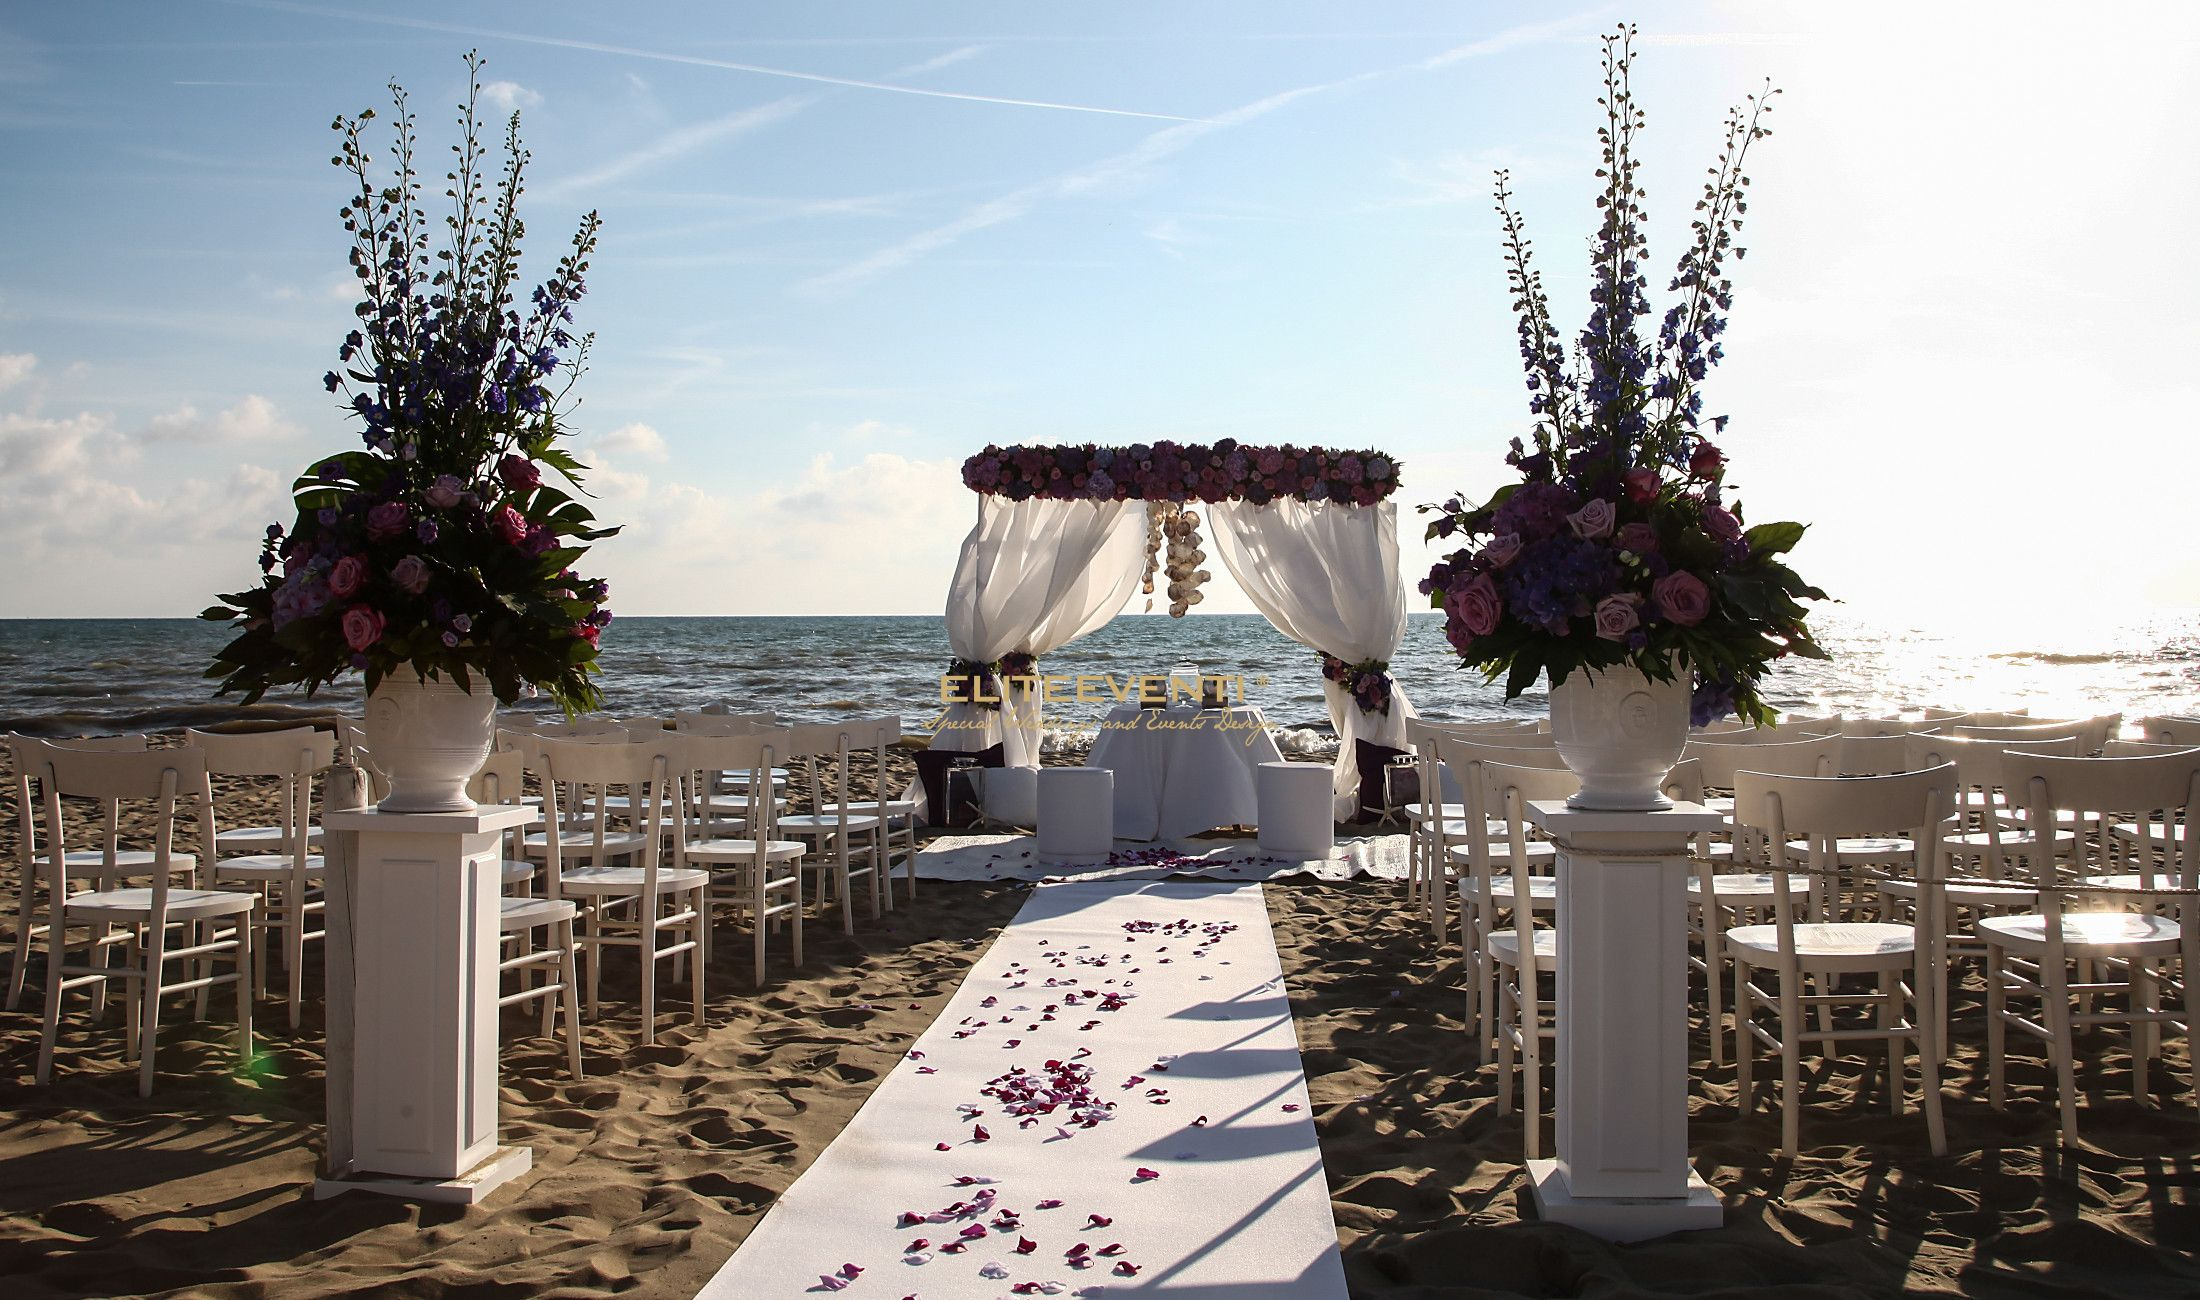 Matrimonio Spiaggia Eventi : Beach wedding party eliteeventi